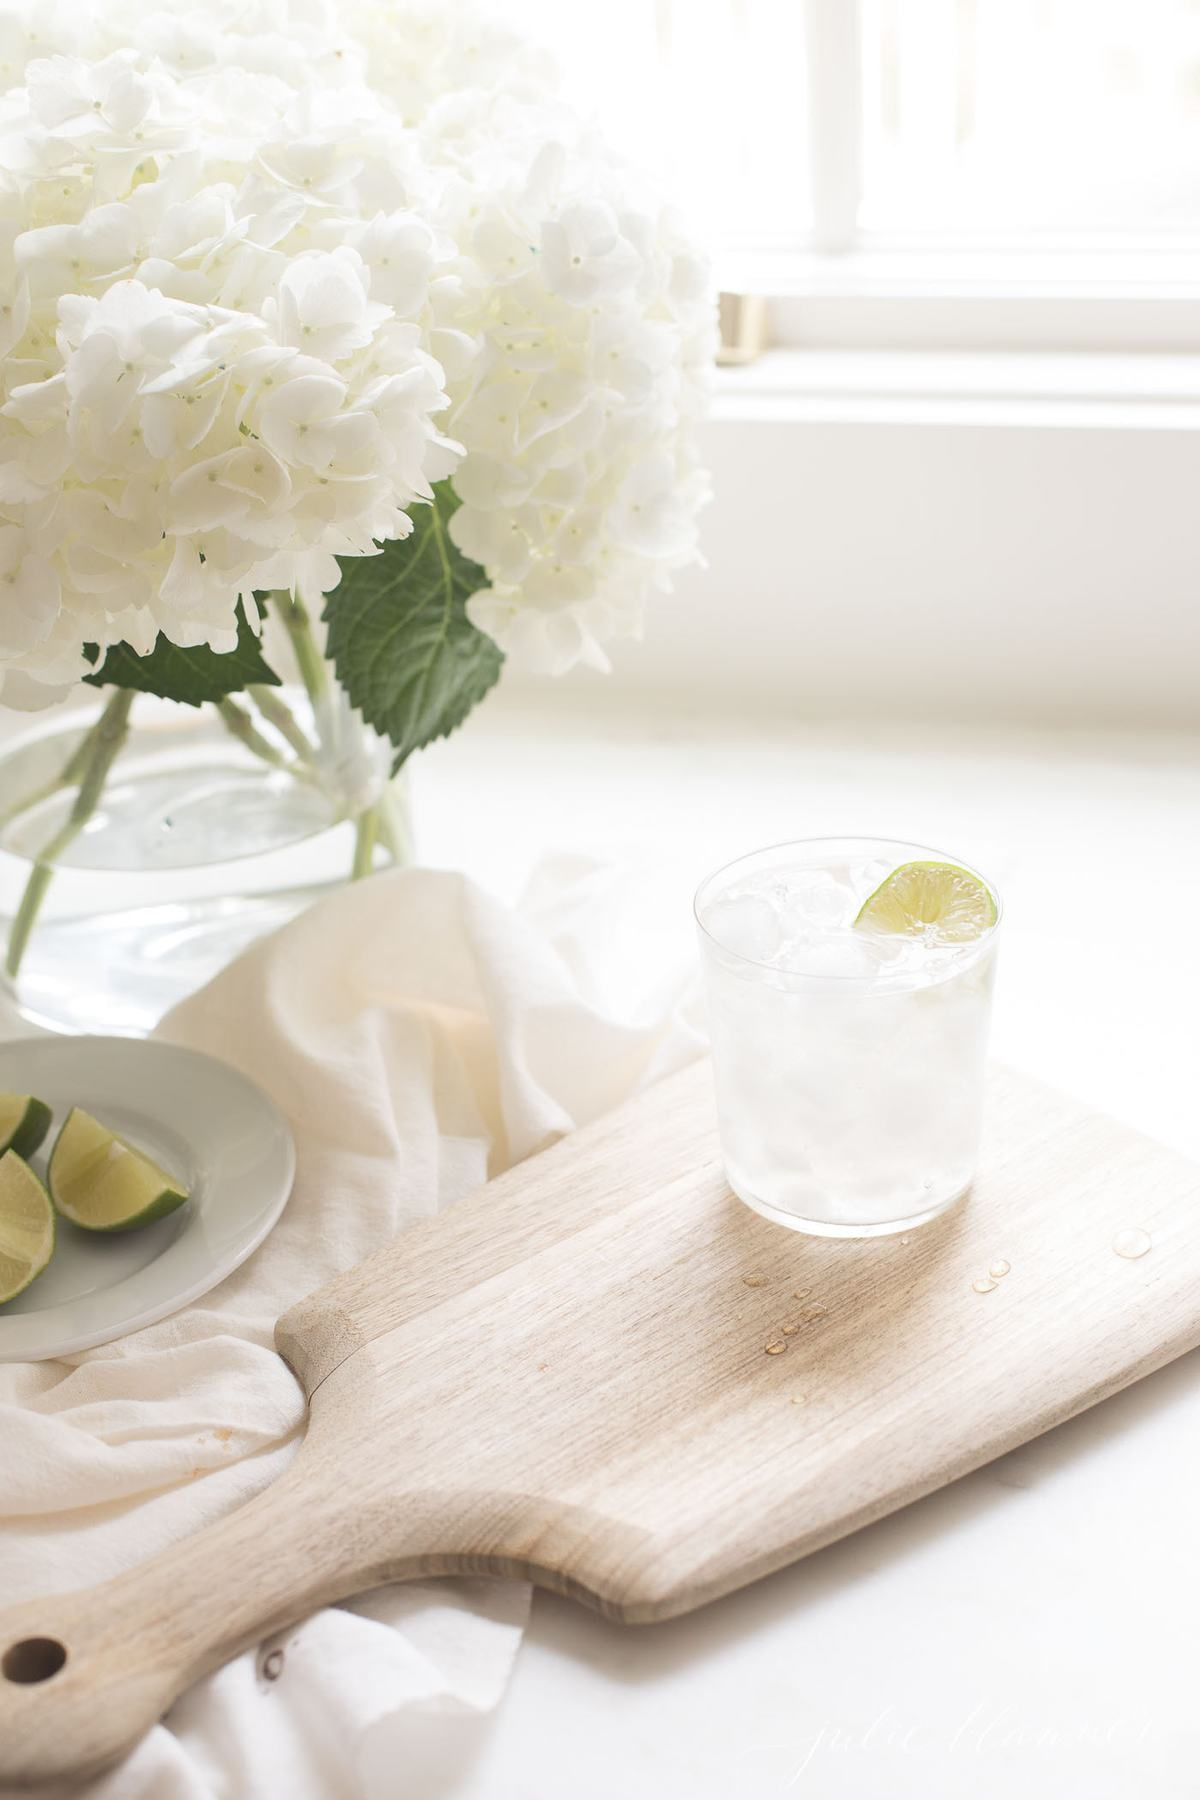 A fresh paloma recipe in a clear glass on ice, with a vase of fresh flowers in the background.